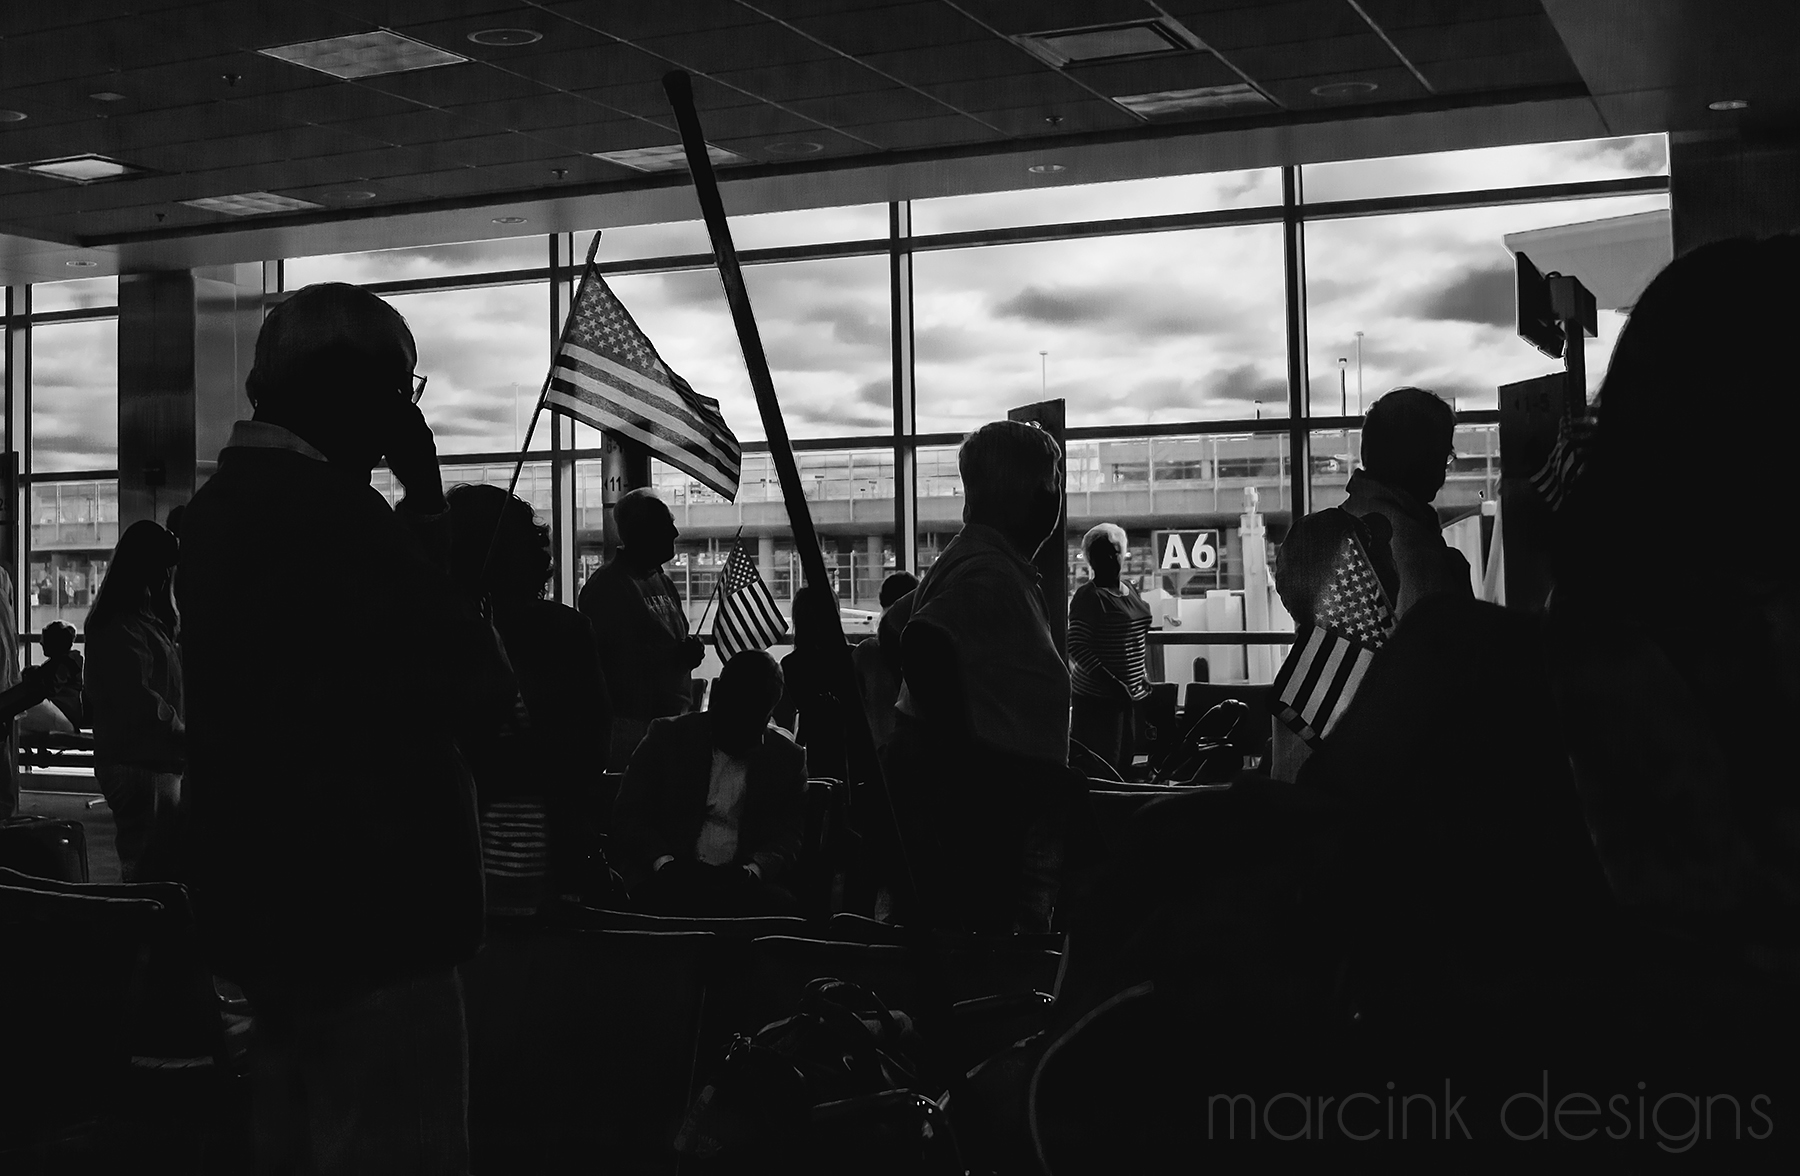 Arrival at Baltimore. The entire gate area had stopped to cheer for the veterans as they came off the plane.